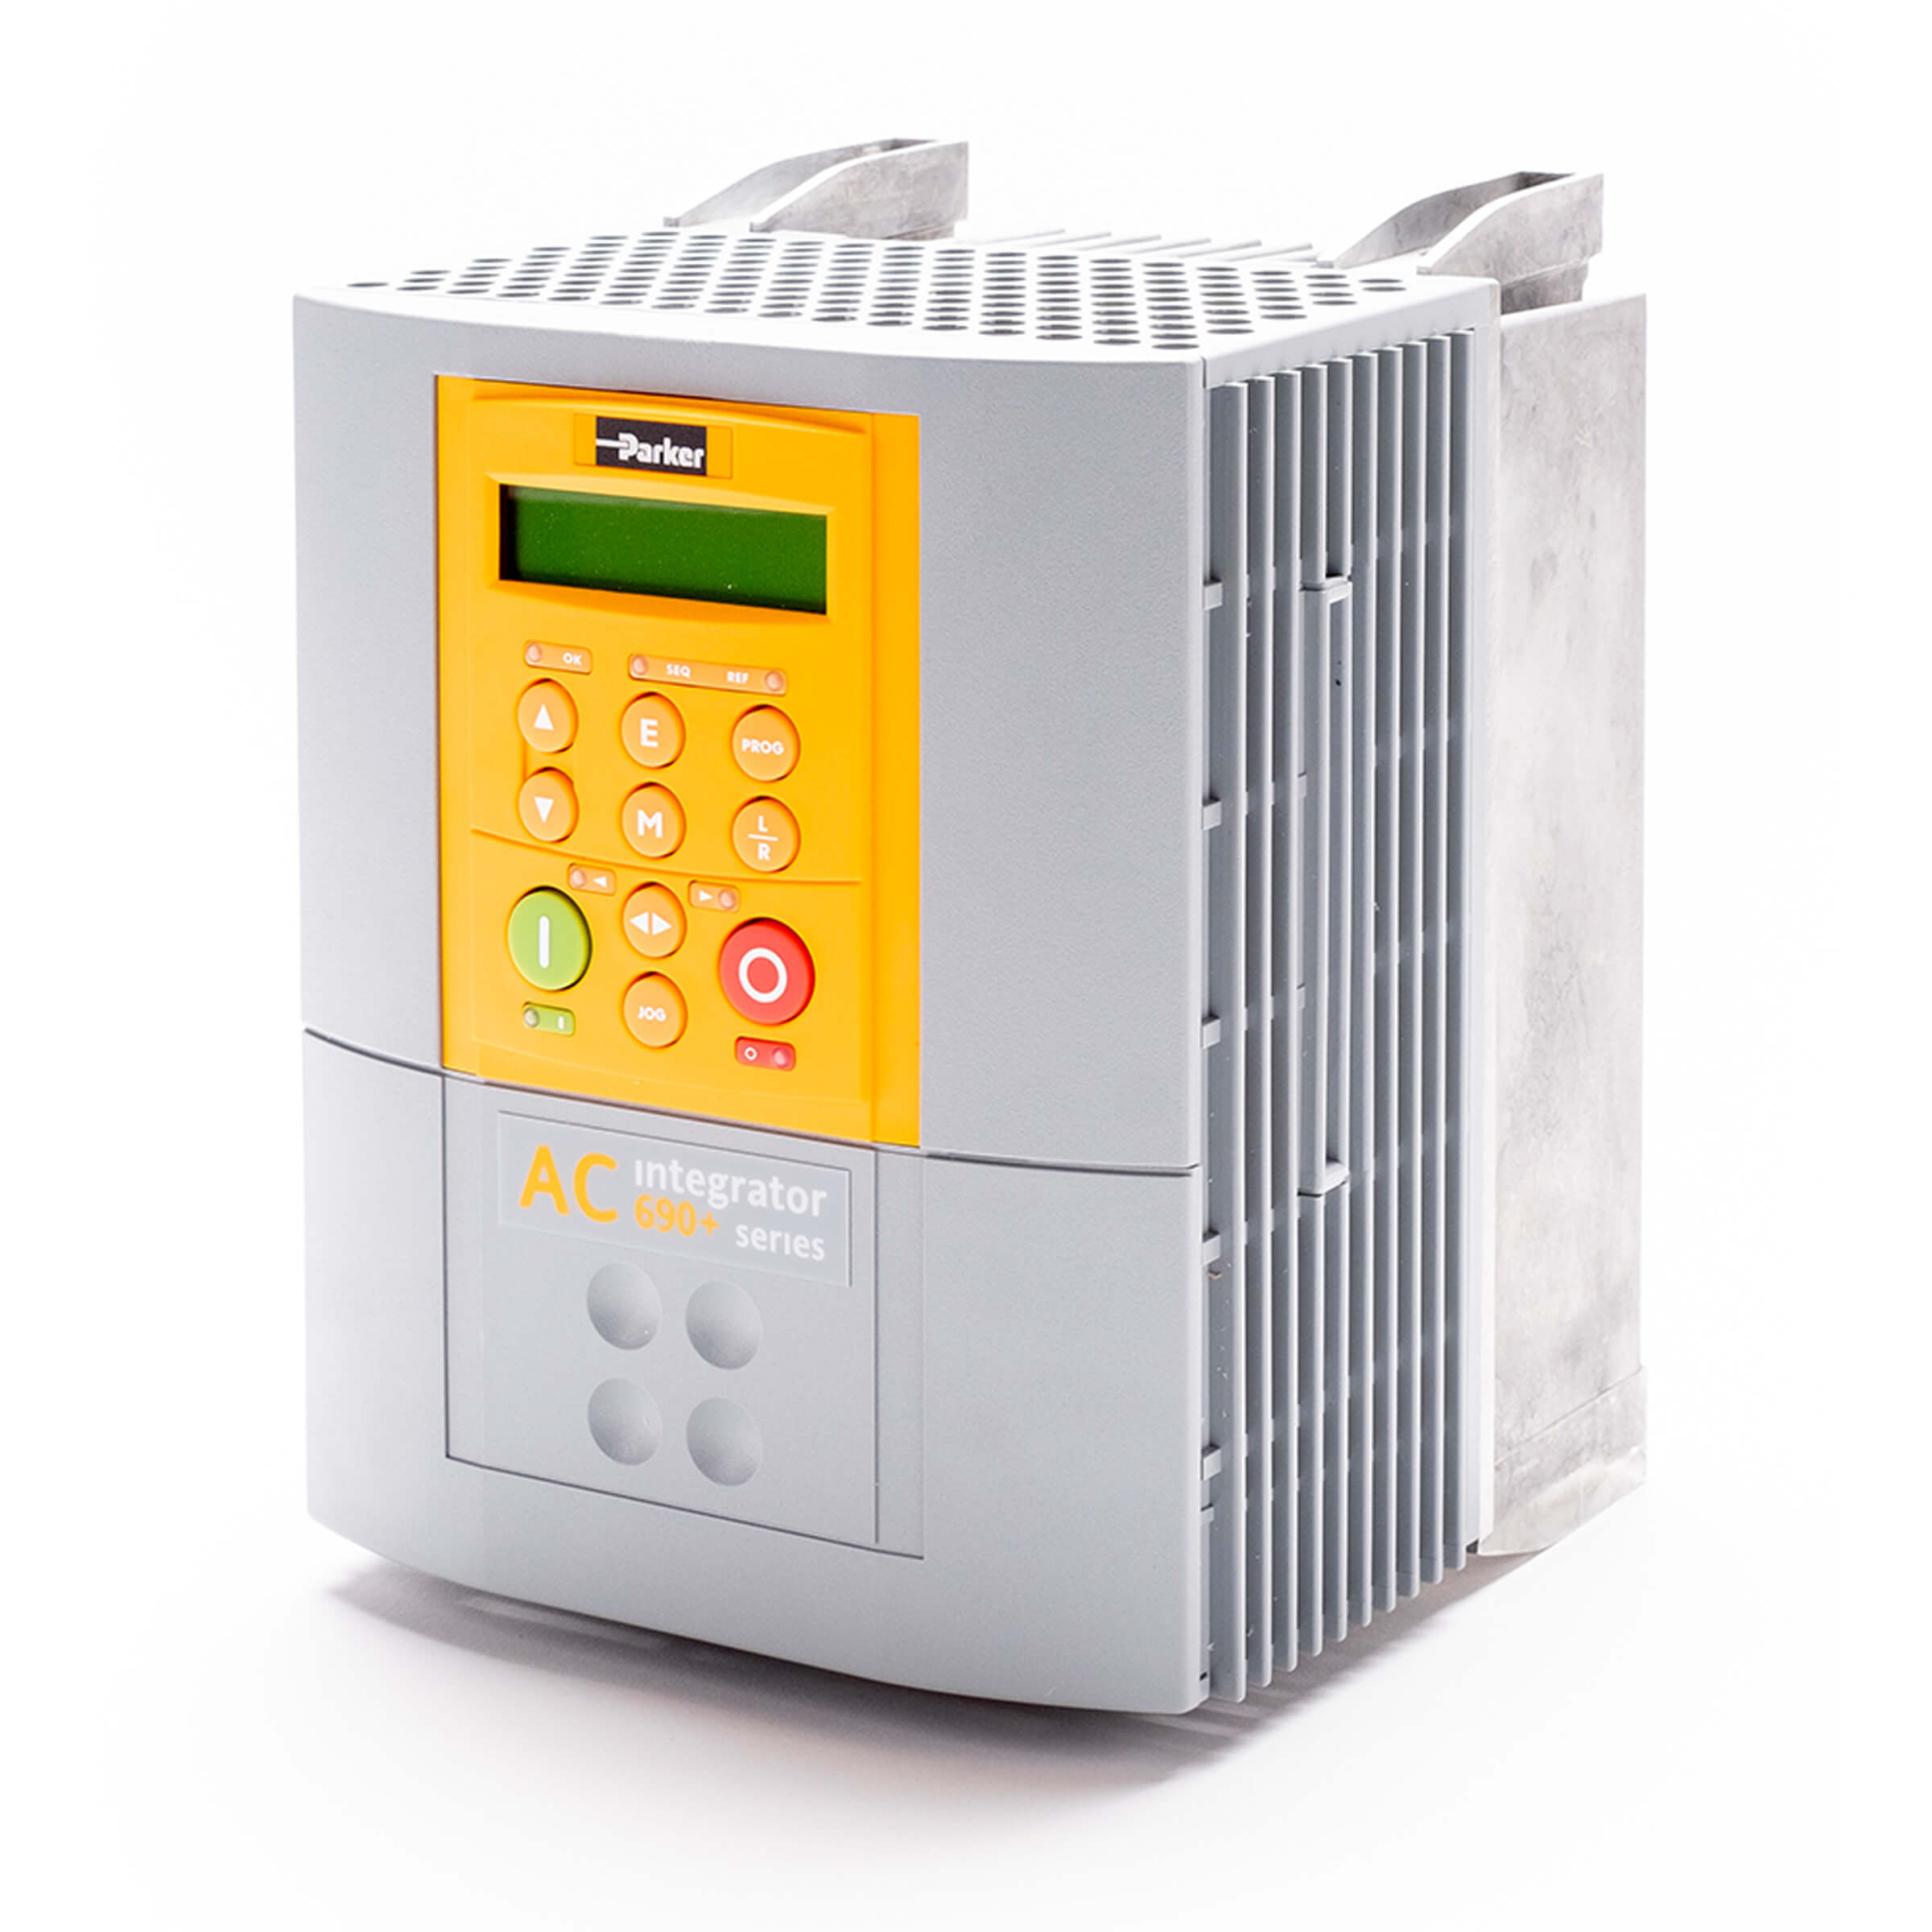 690 Series - 3PH, 400/460V - 4kW, Frame B - Universal Auxiliary - Brake Switch Fitted - Filter Fitted - No System Board - Panel Mount - No Special Options - English (50Hz) - 6901 Keypad - No Speed Feedback - No Comms